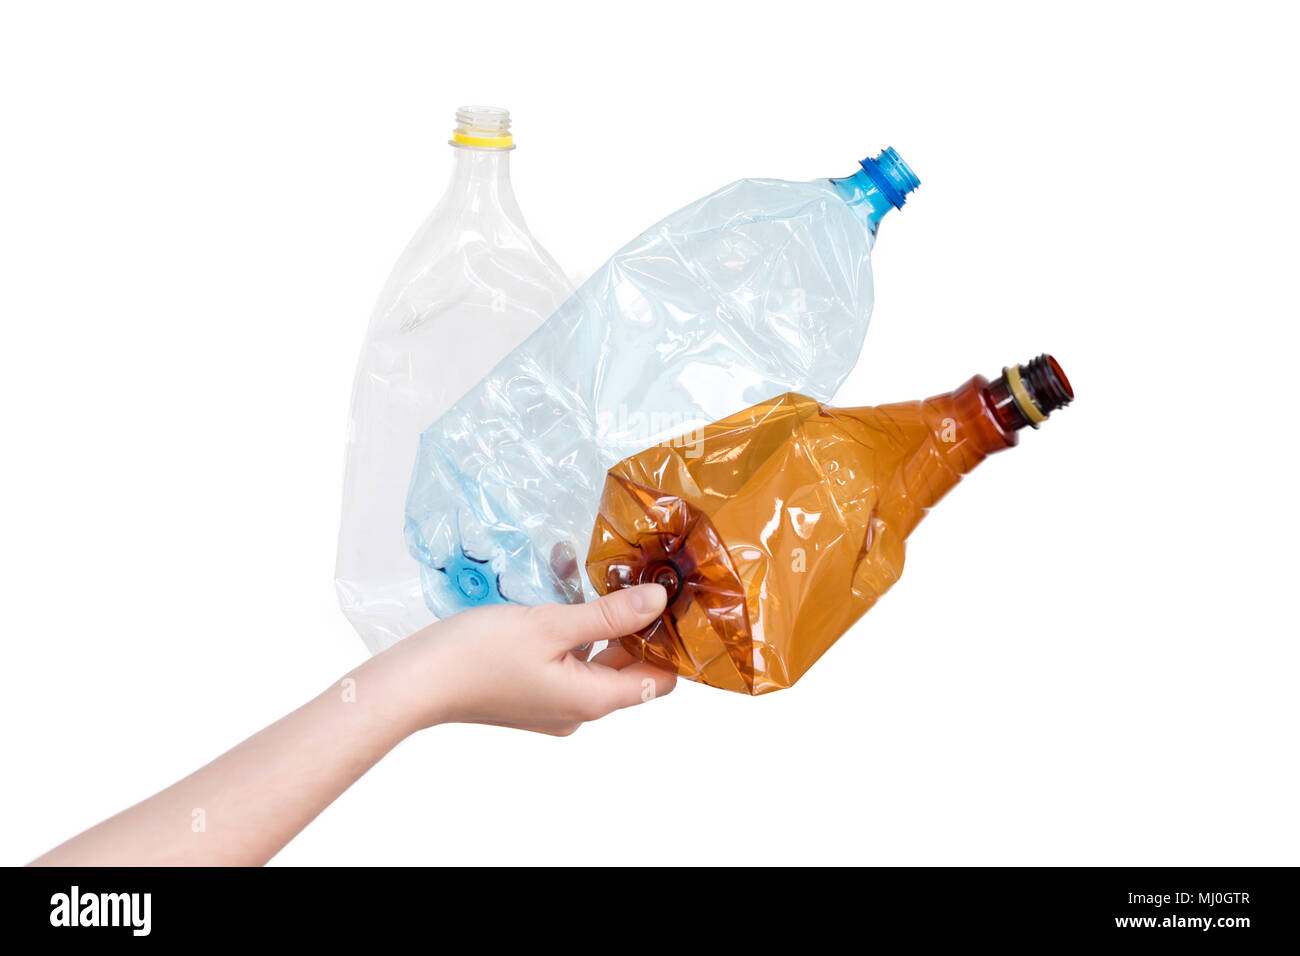 Female hand holding different types of crushed plastic bottles isolated on white. Recyclable waste. Recycling, reuse, garbage disposal, resources, environment and ecology concept - Stock Image